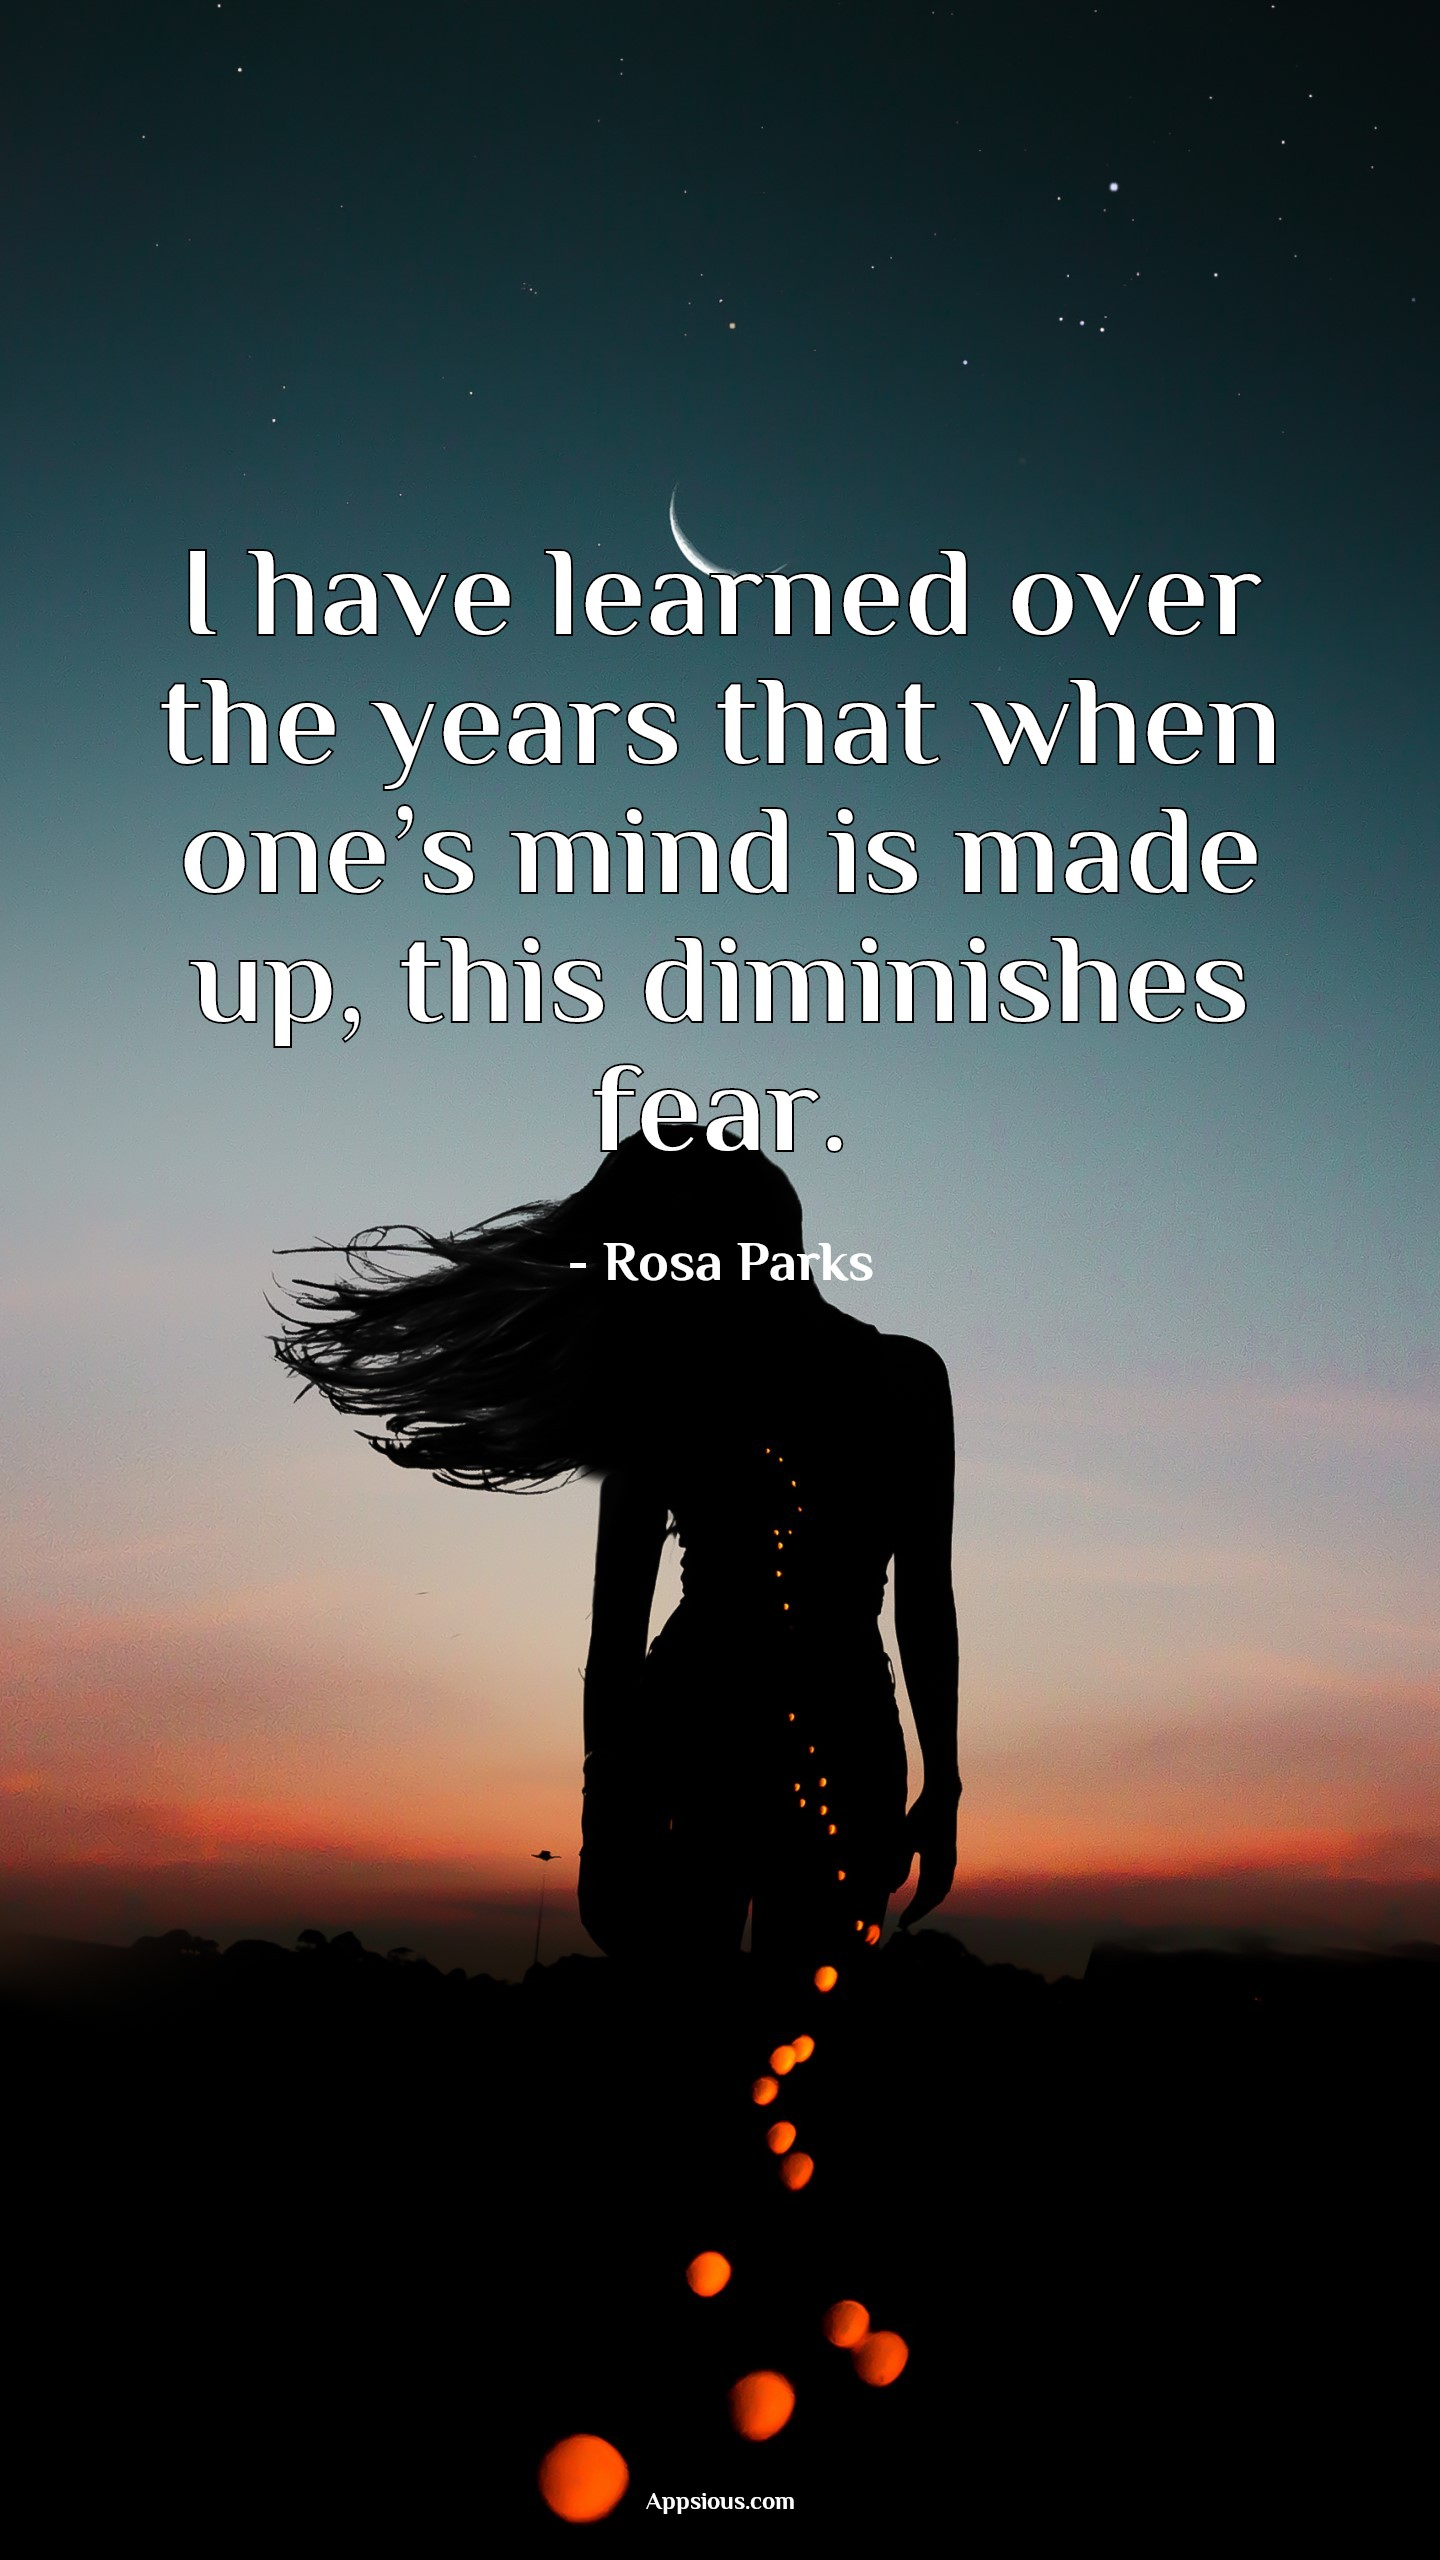 I have learned over the years that when one's mind is made up, this diminishes fear.